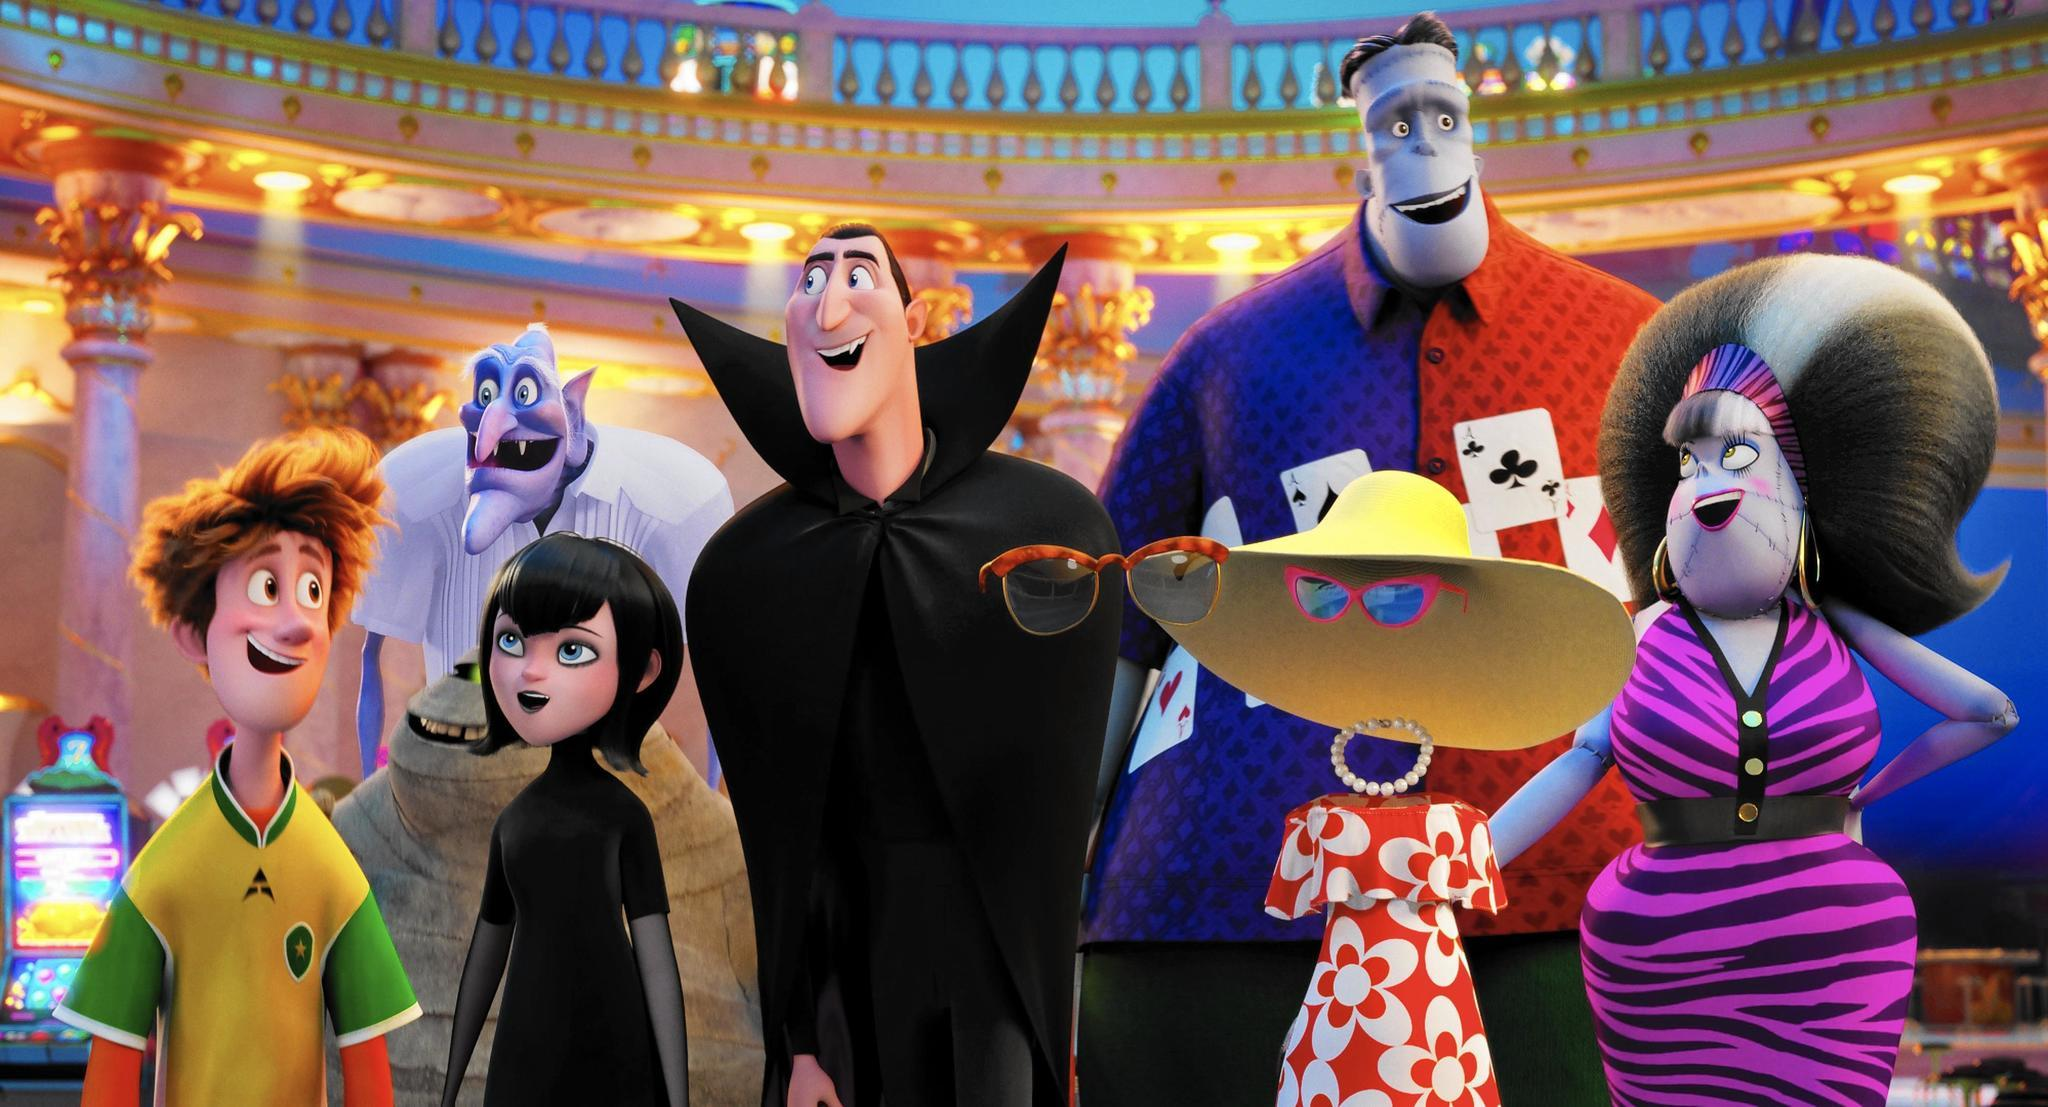 'Hotel Transylvania 3' Review: Monsters Aboard The Love